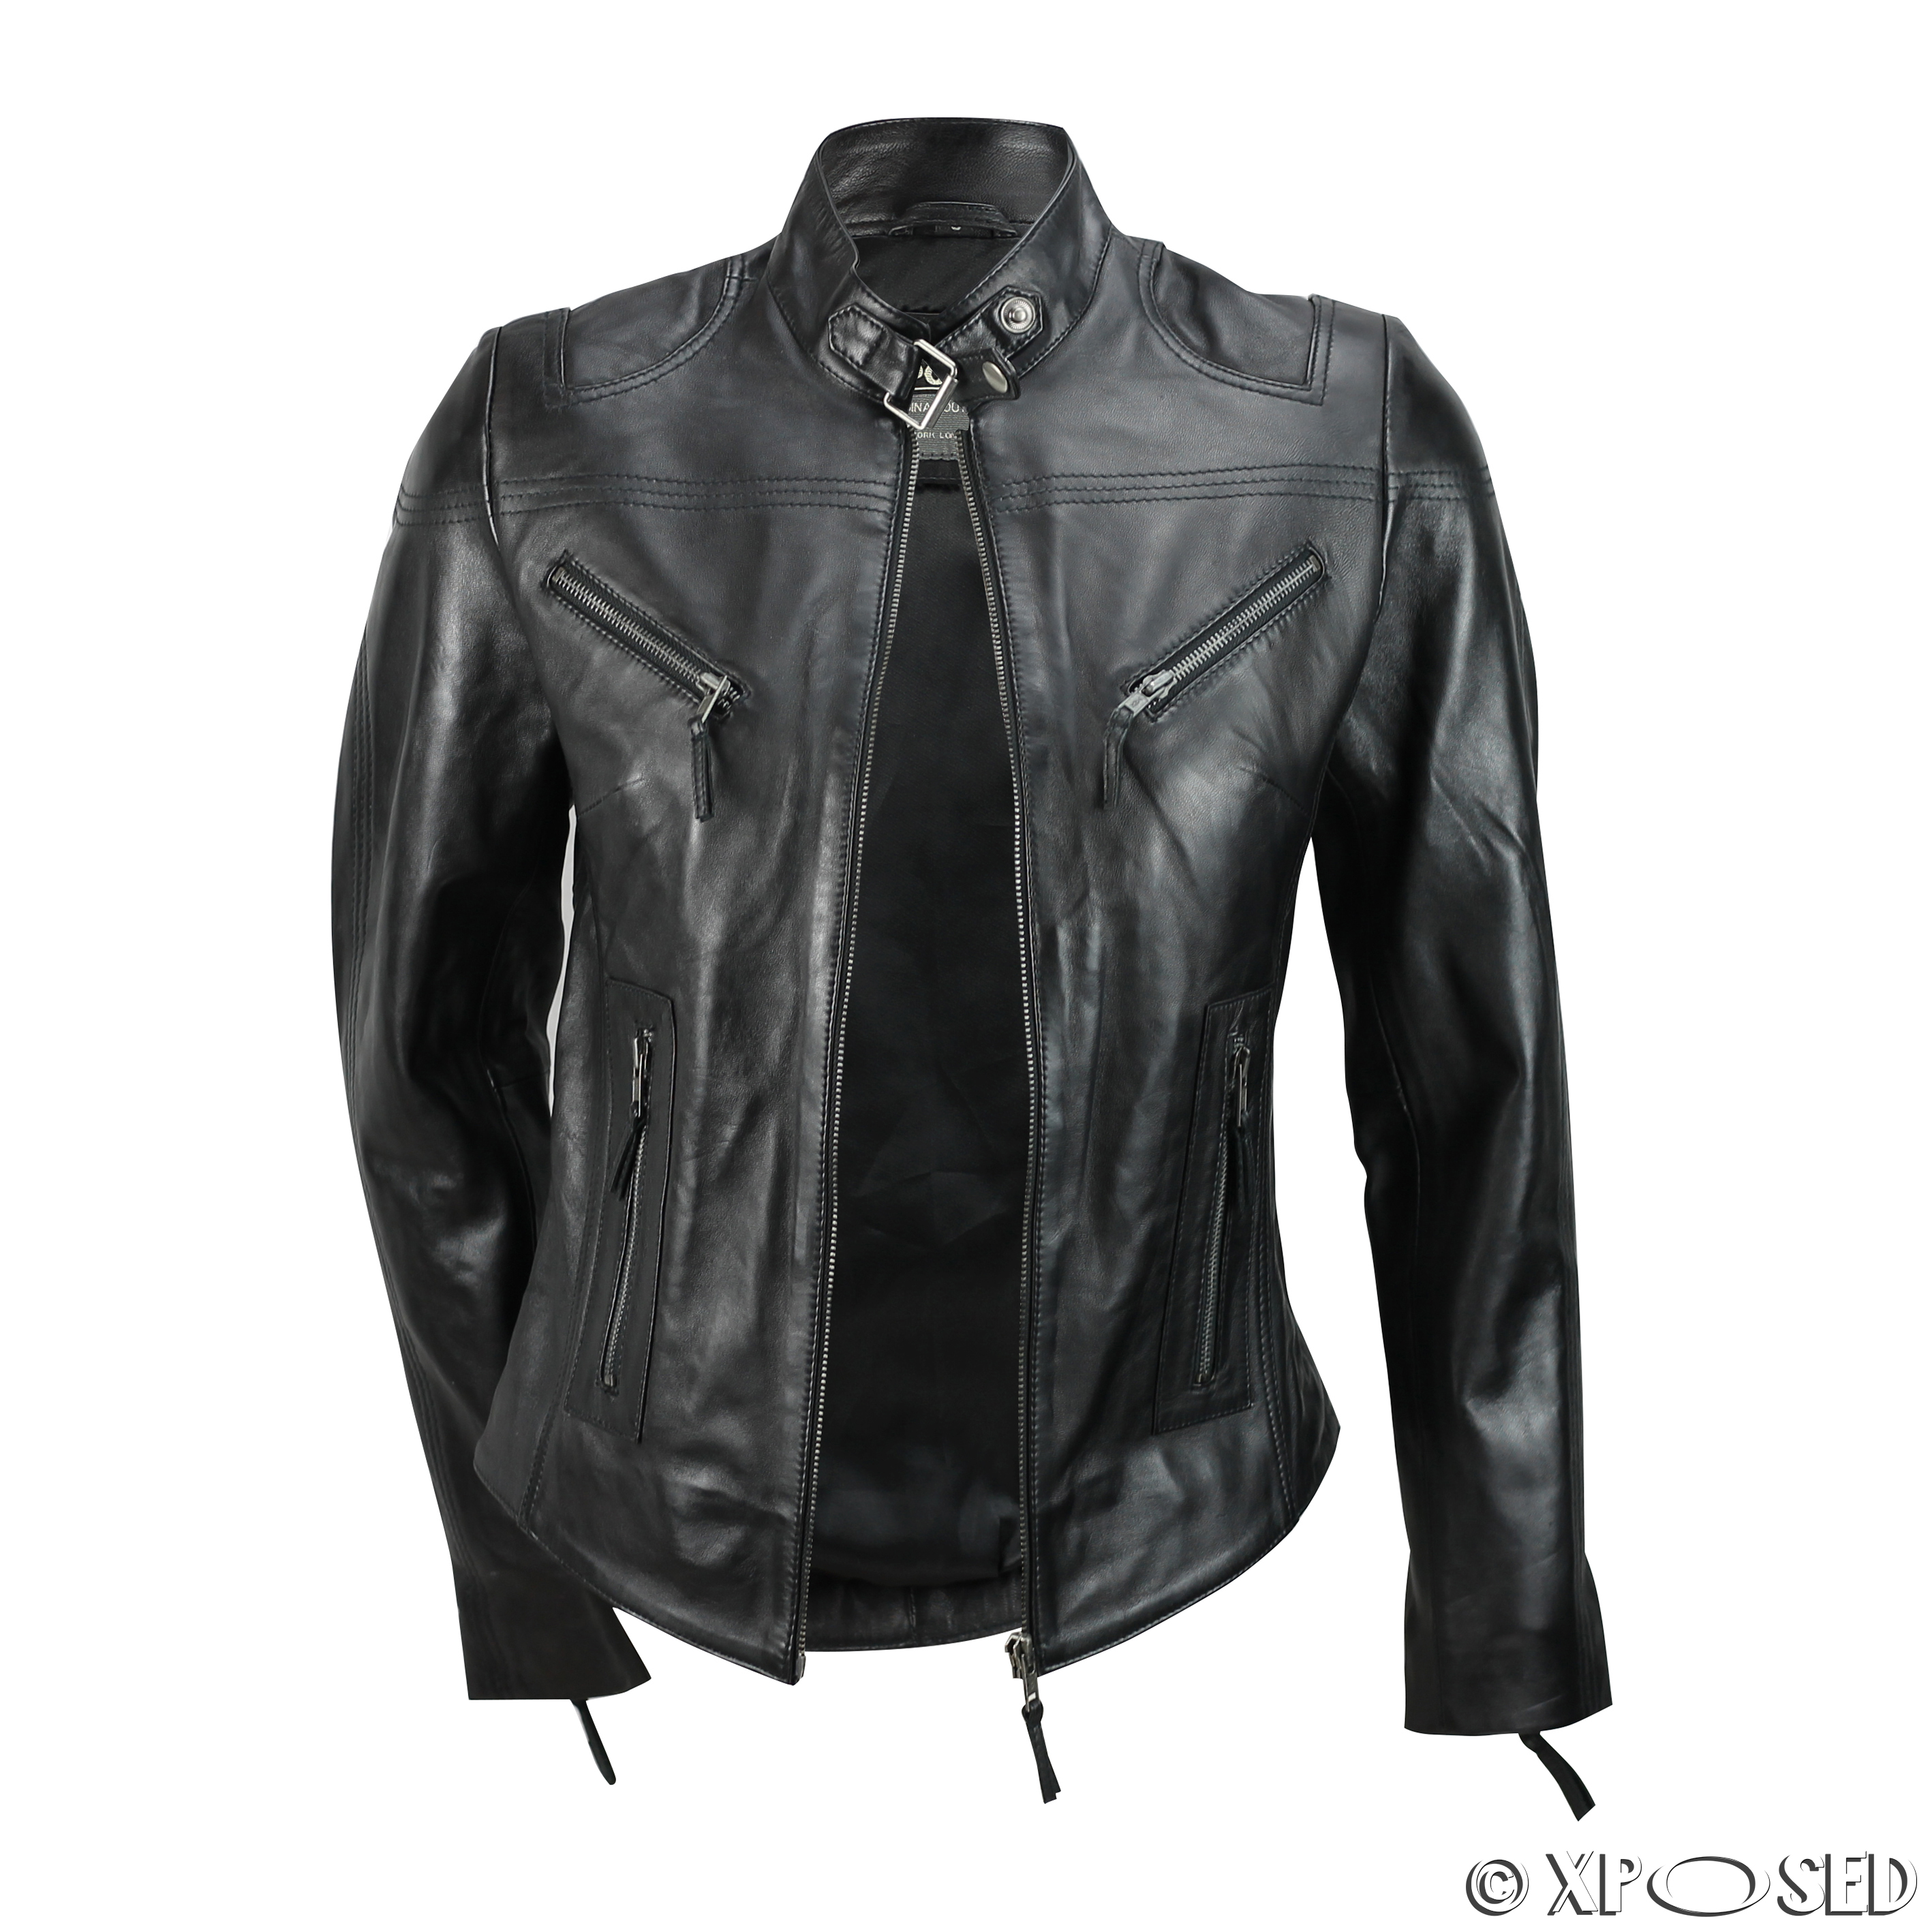 Leather Jacket Master is an American Leather Brand founded in Trusted by over 10, customers worldwide, Leather Jacket Master is a premium Leather Jackets, Cosplay and Custom Leather Jackets manufacturer.